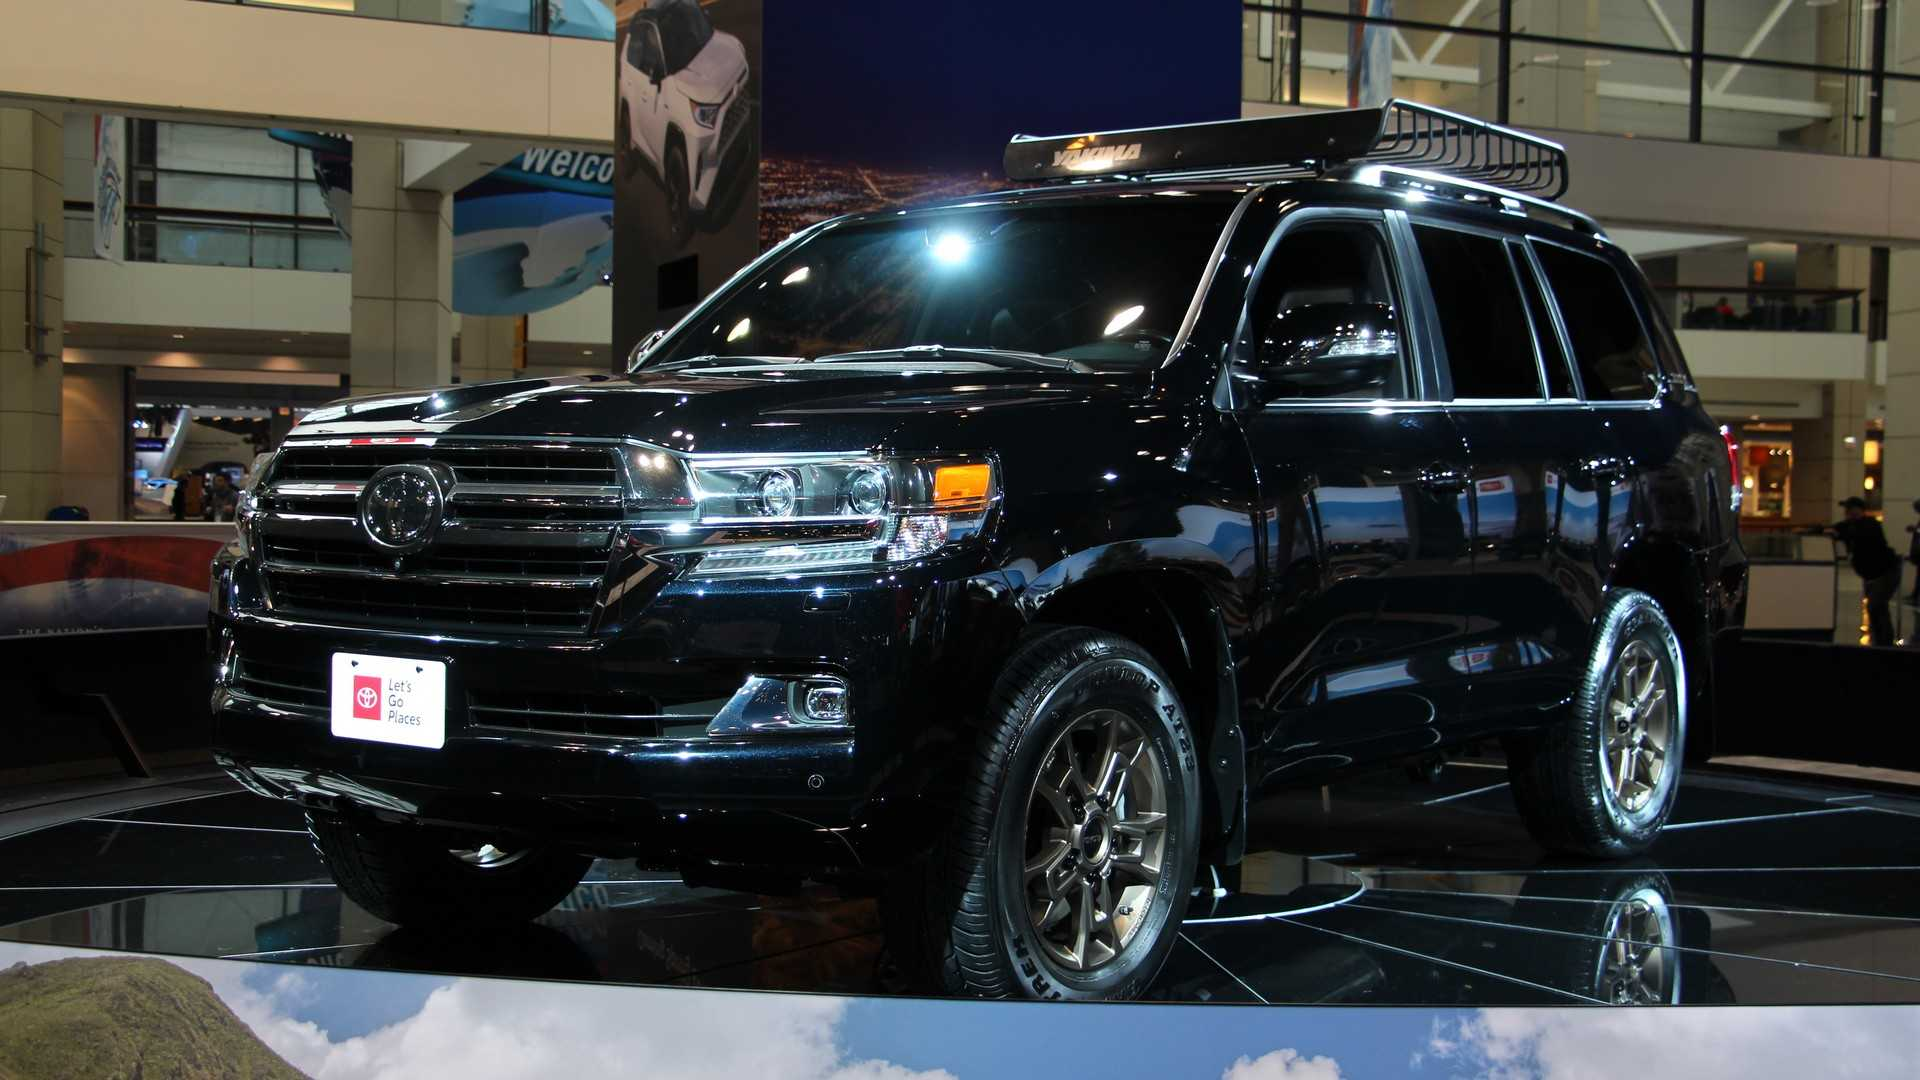 99 The Best Toyota Land Cruiser 2020 Release